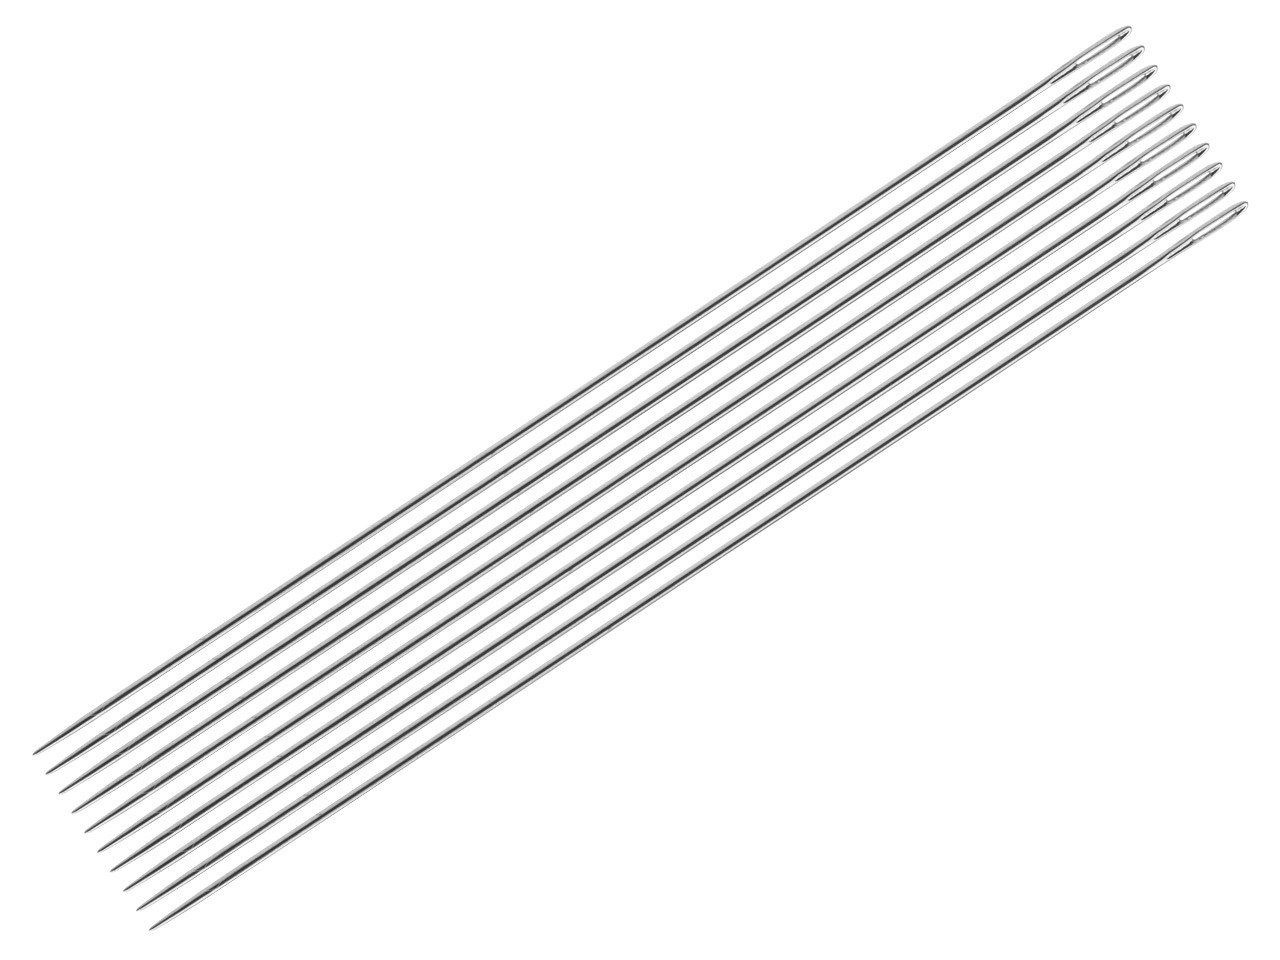 Straight Beading Needles,          Pack of 10, 0.33mm, Size 12